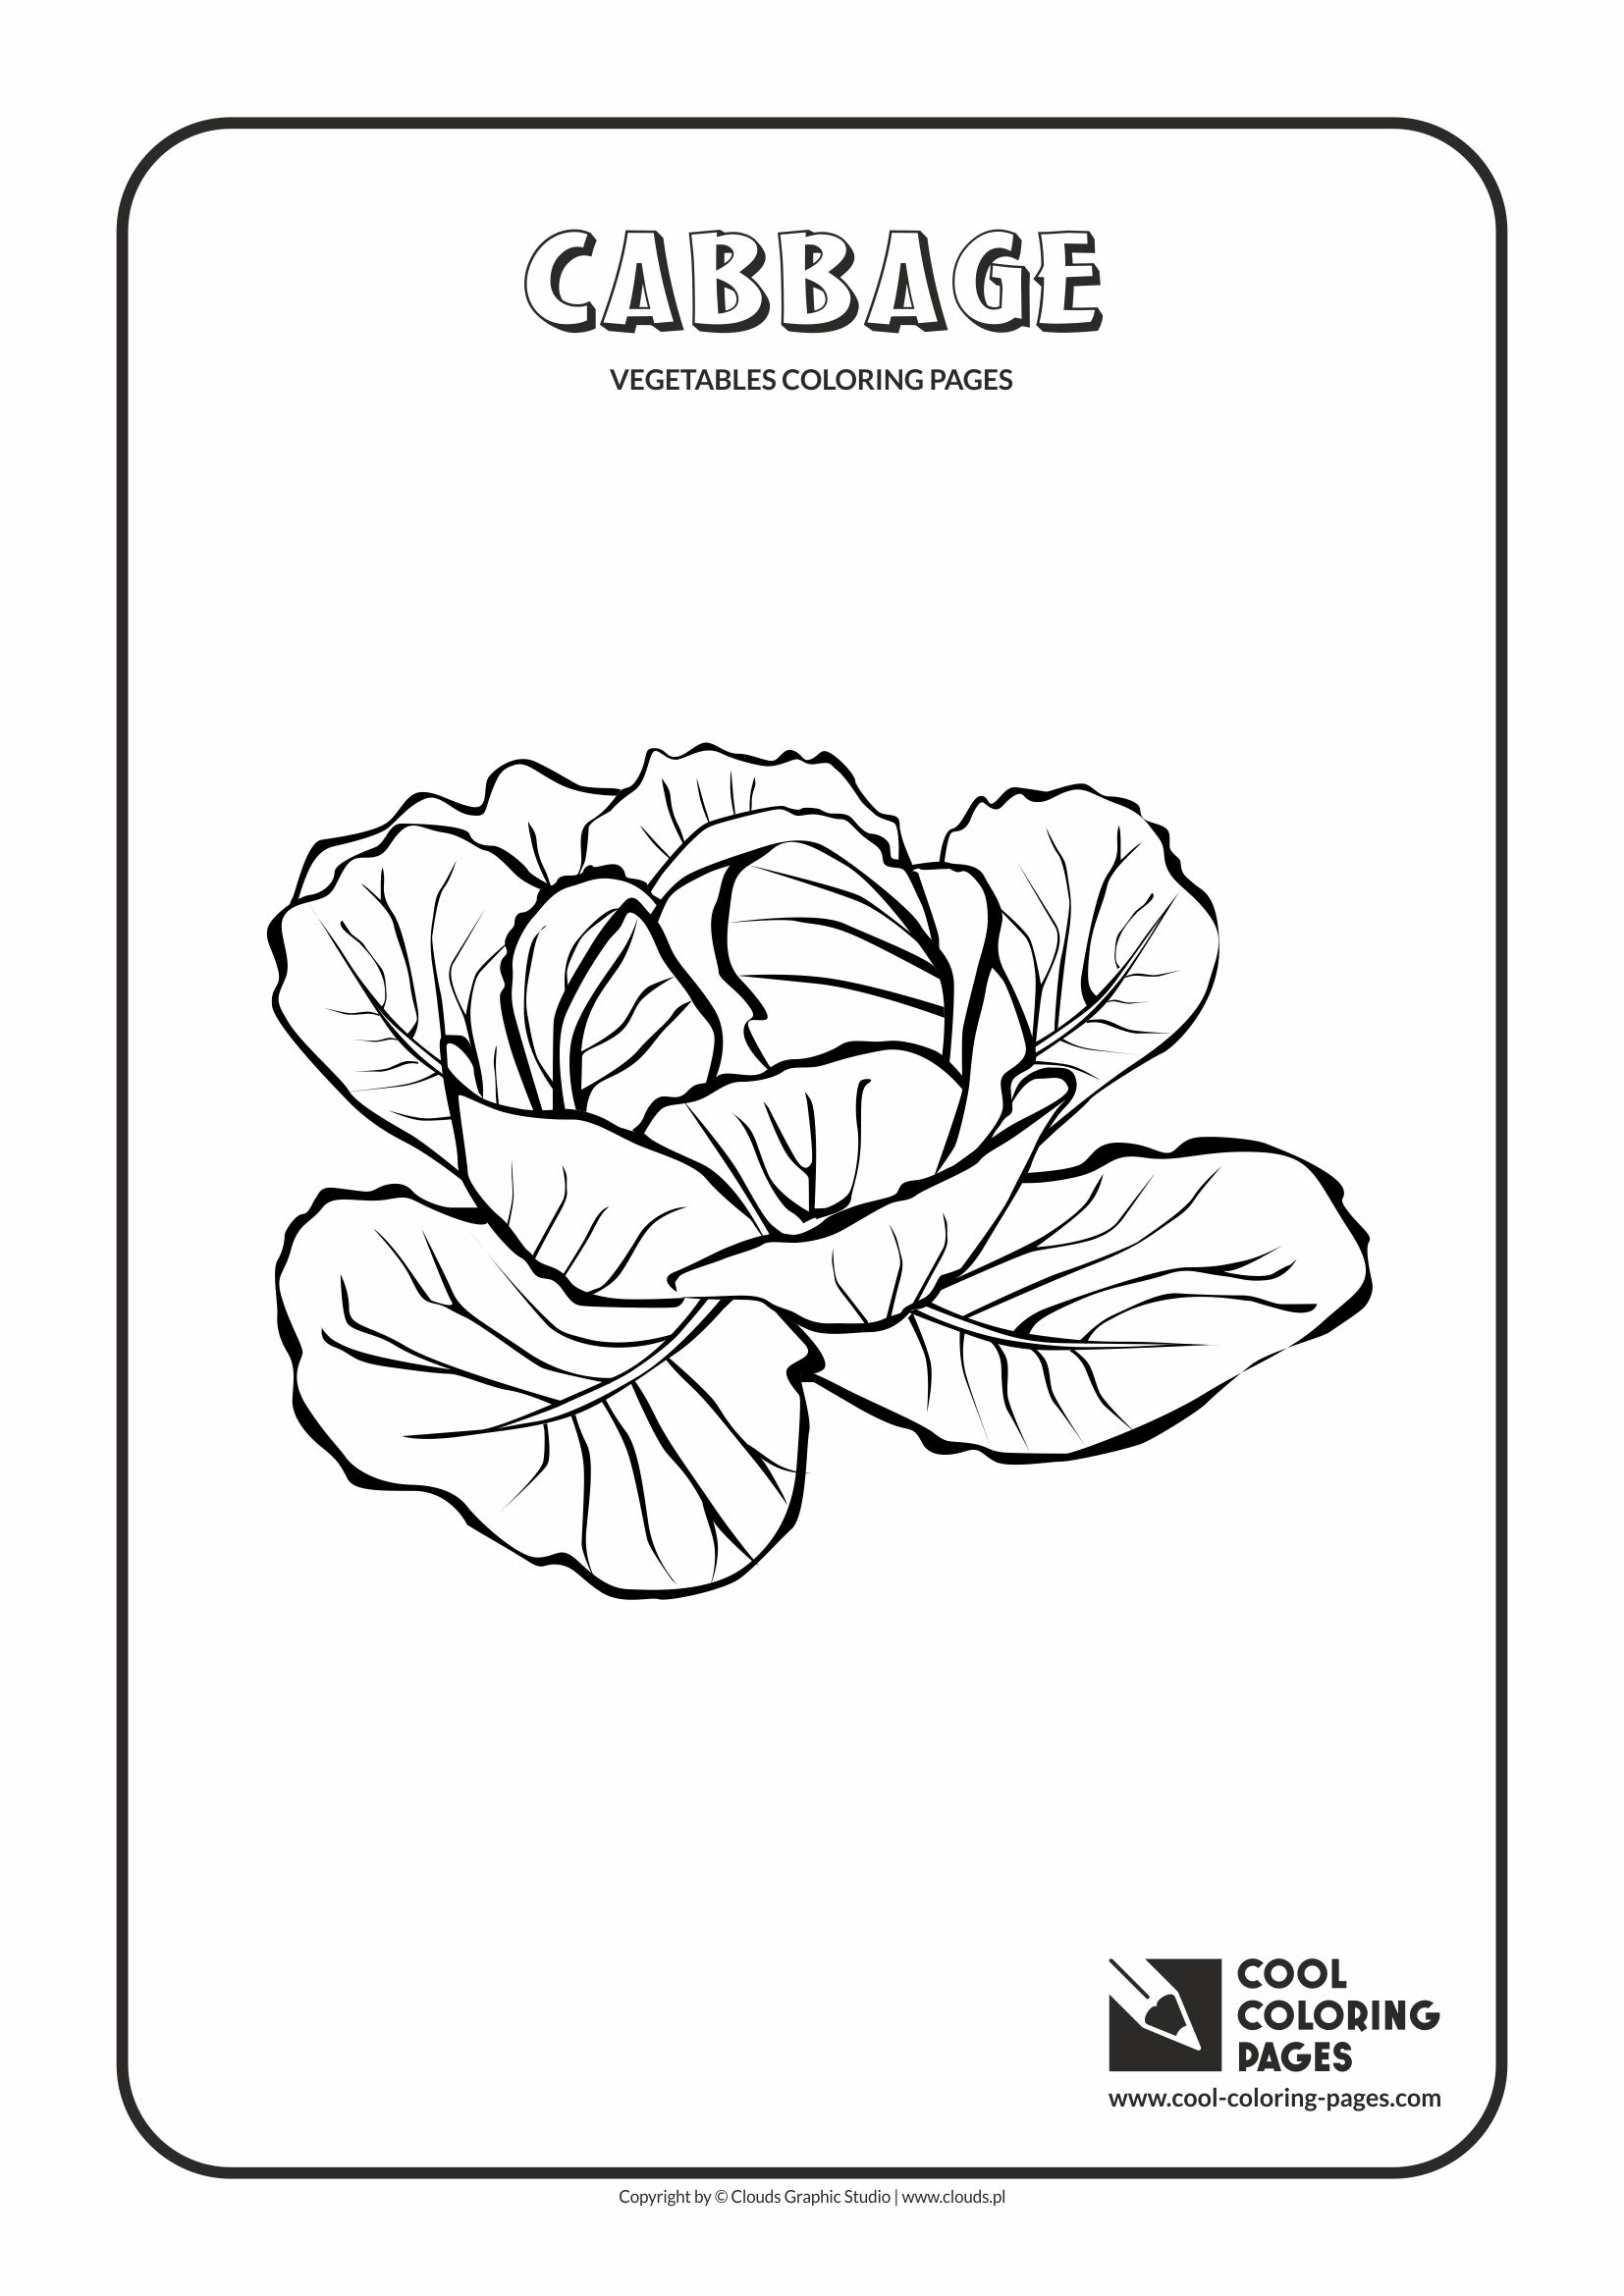 Cool coloring pages plants cabbage coloring page with cabbage